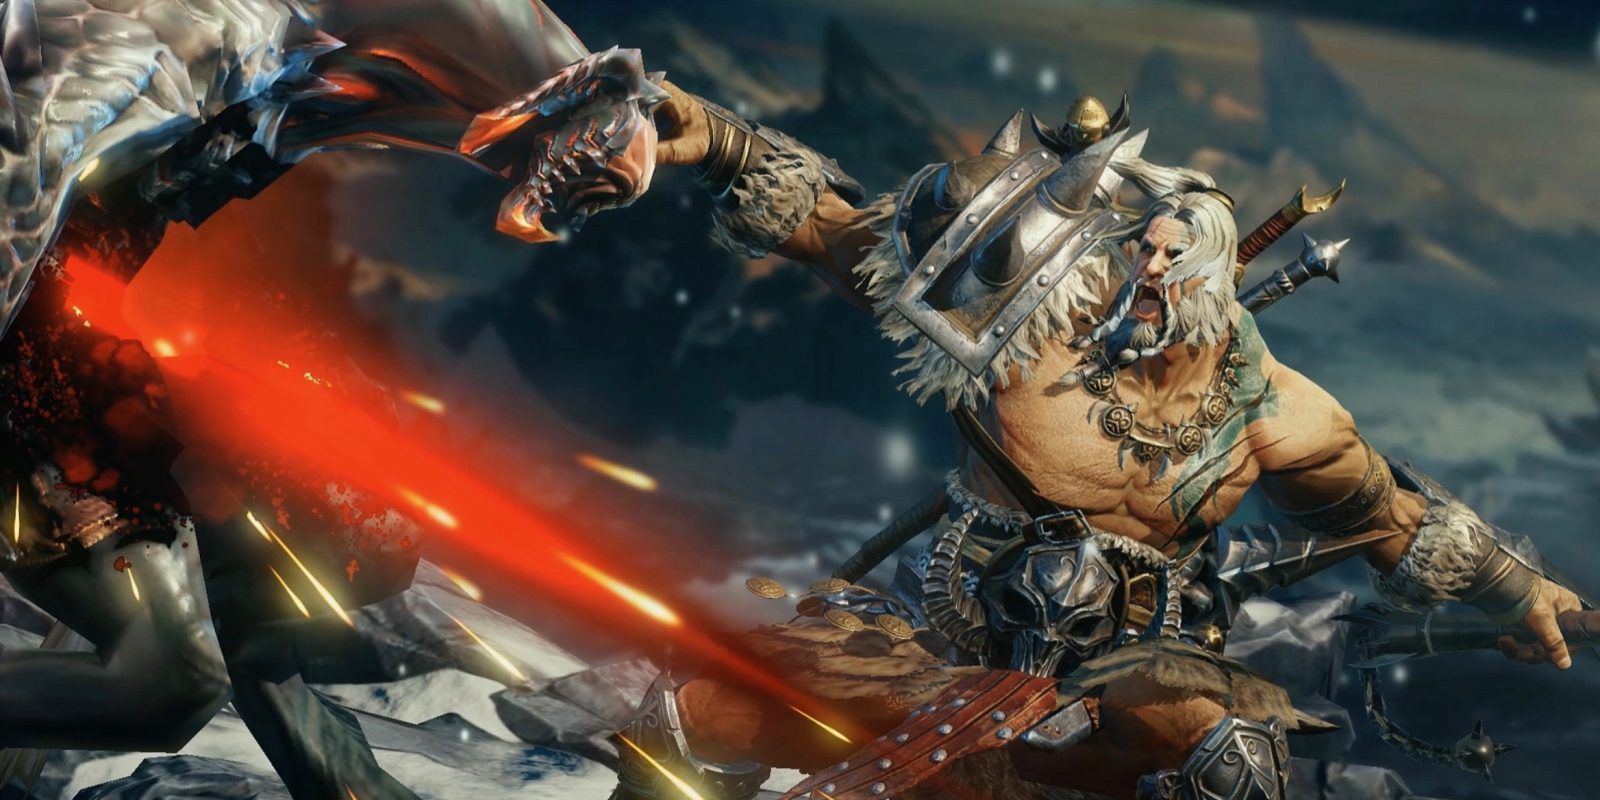 Diablo: Immortal, i fan esprimono disappunto coi dislike